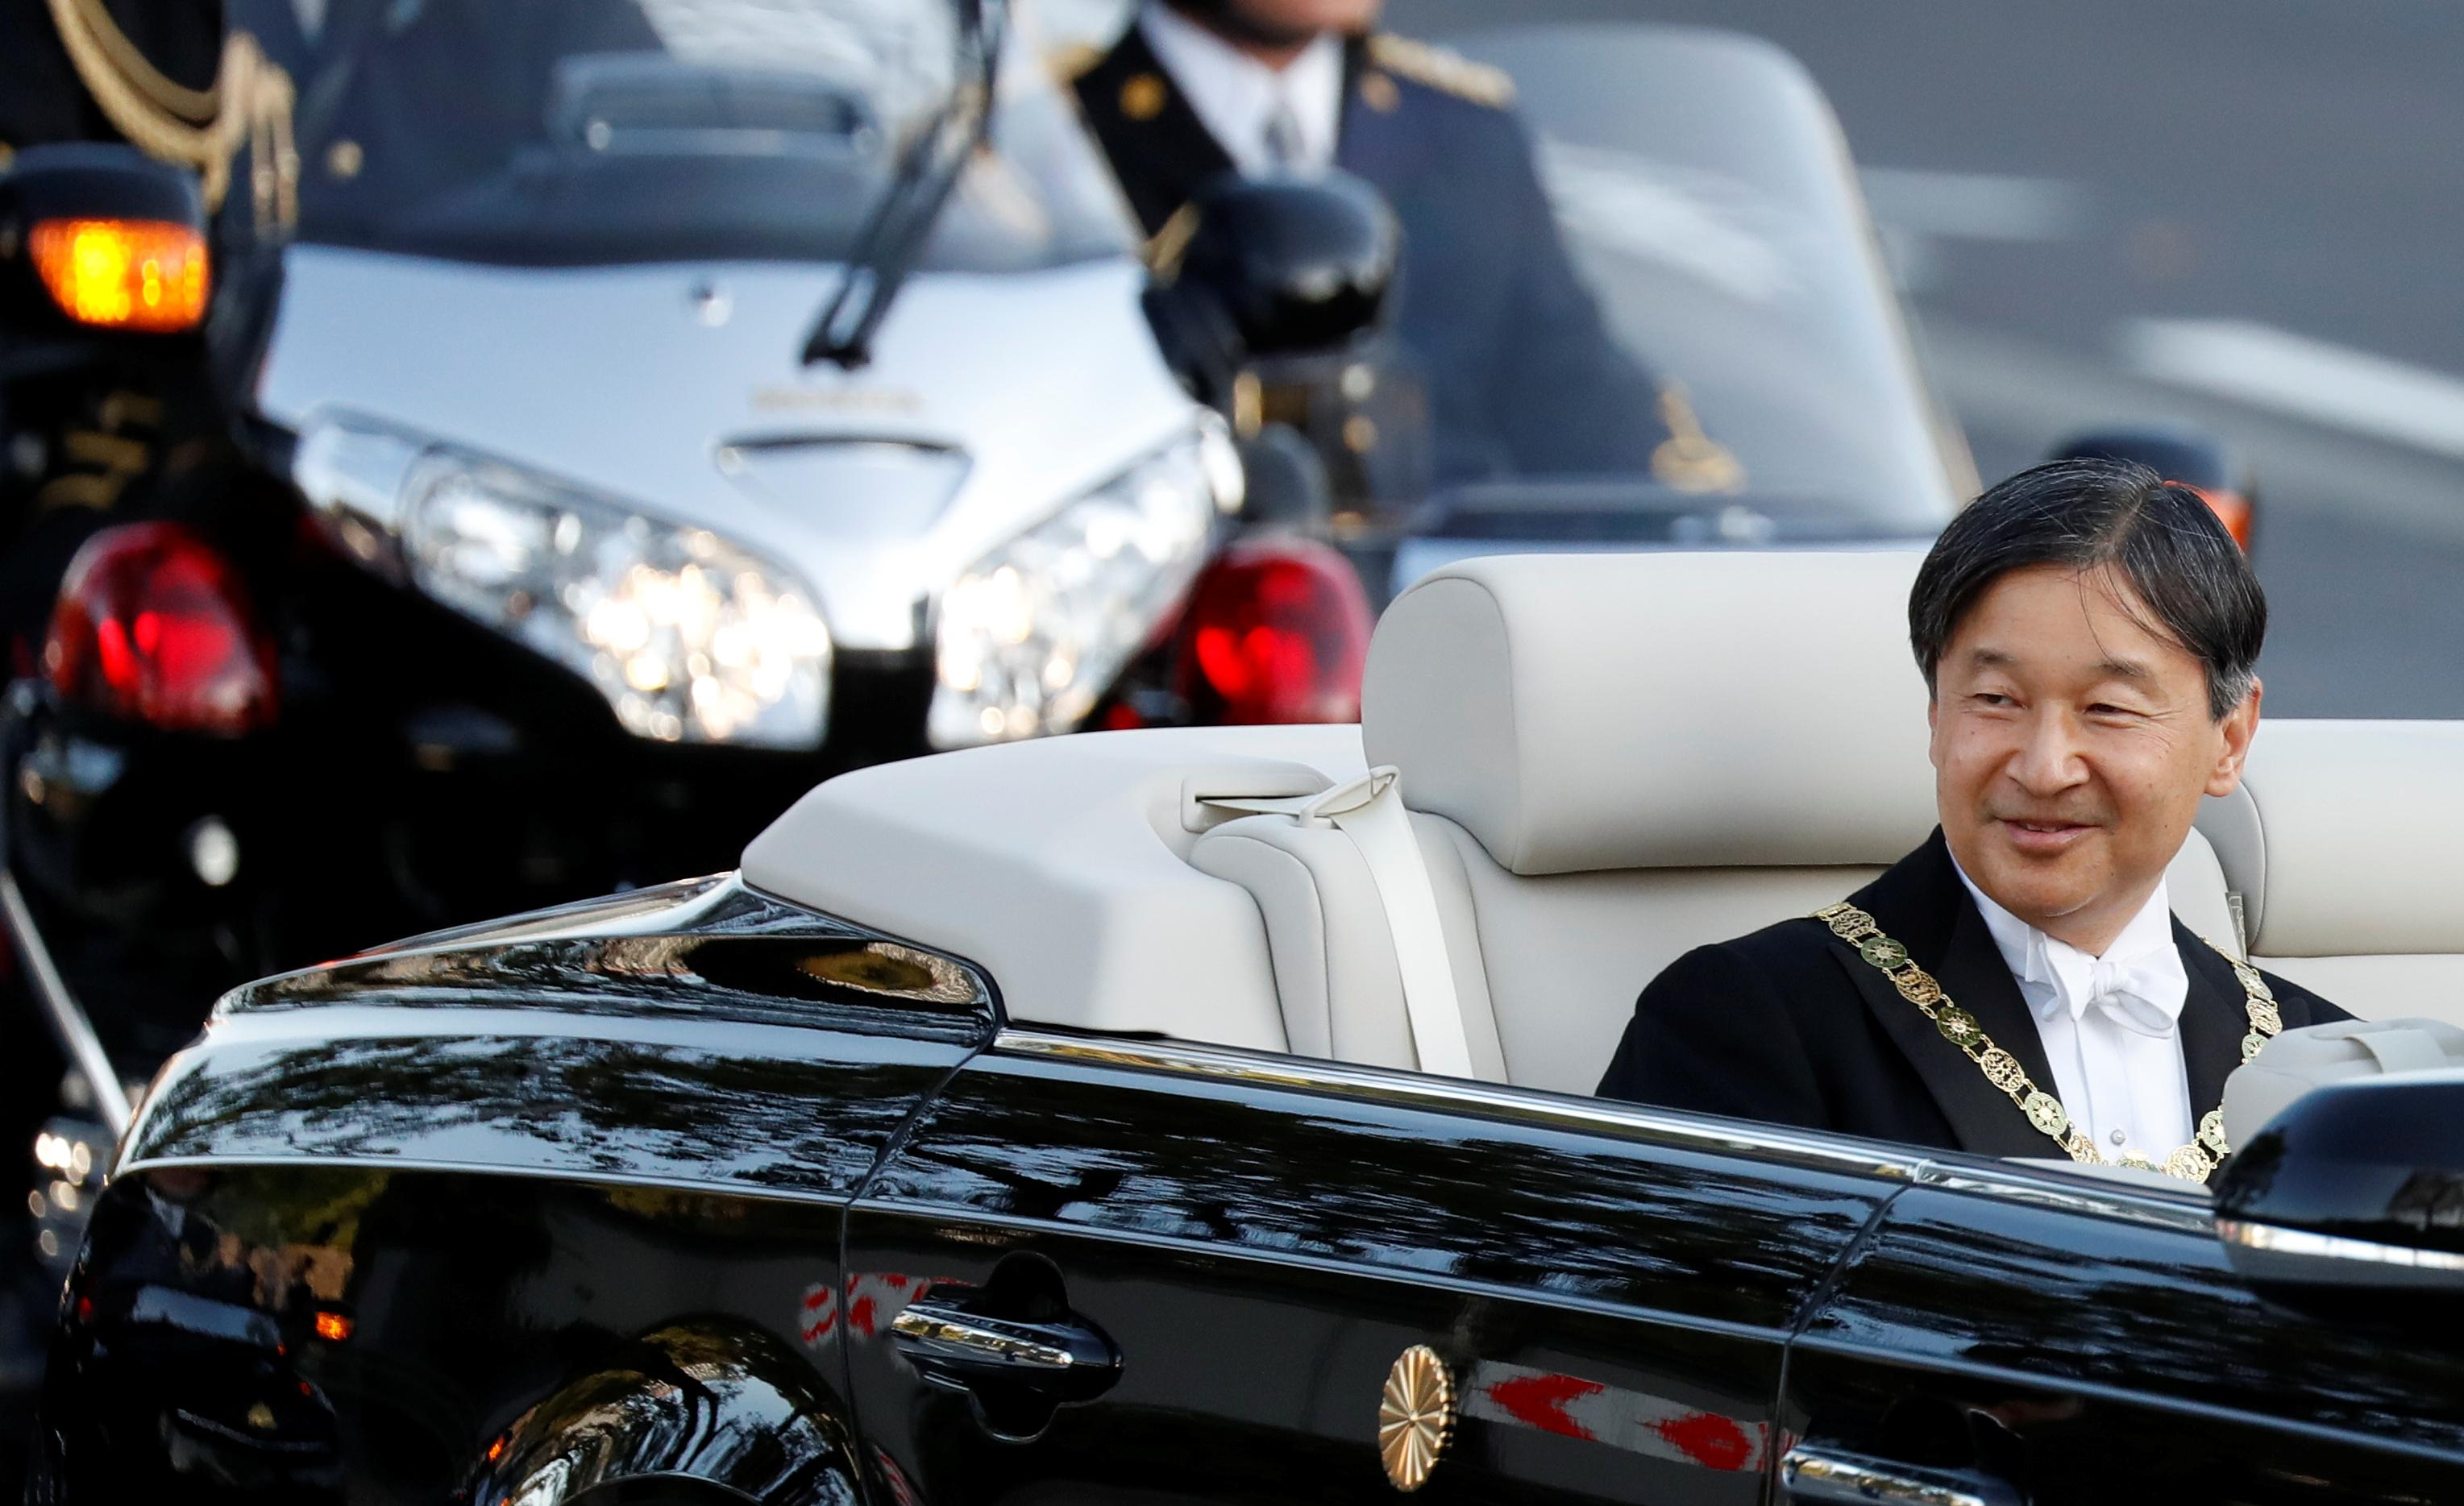 Explainer: Symbolic night with goddess to wrap up Japan emperor's...